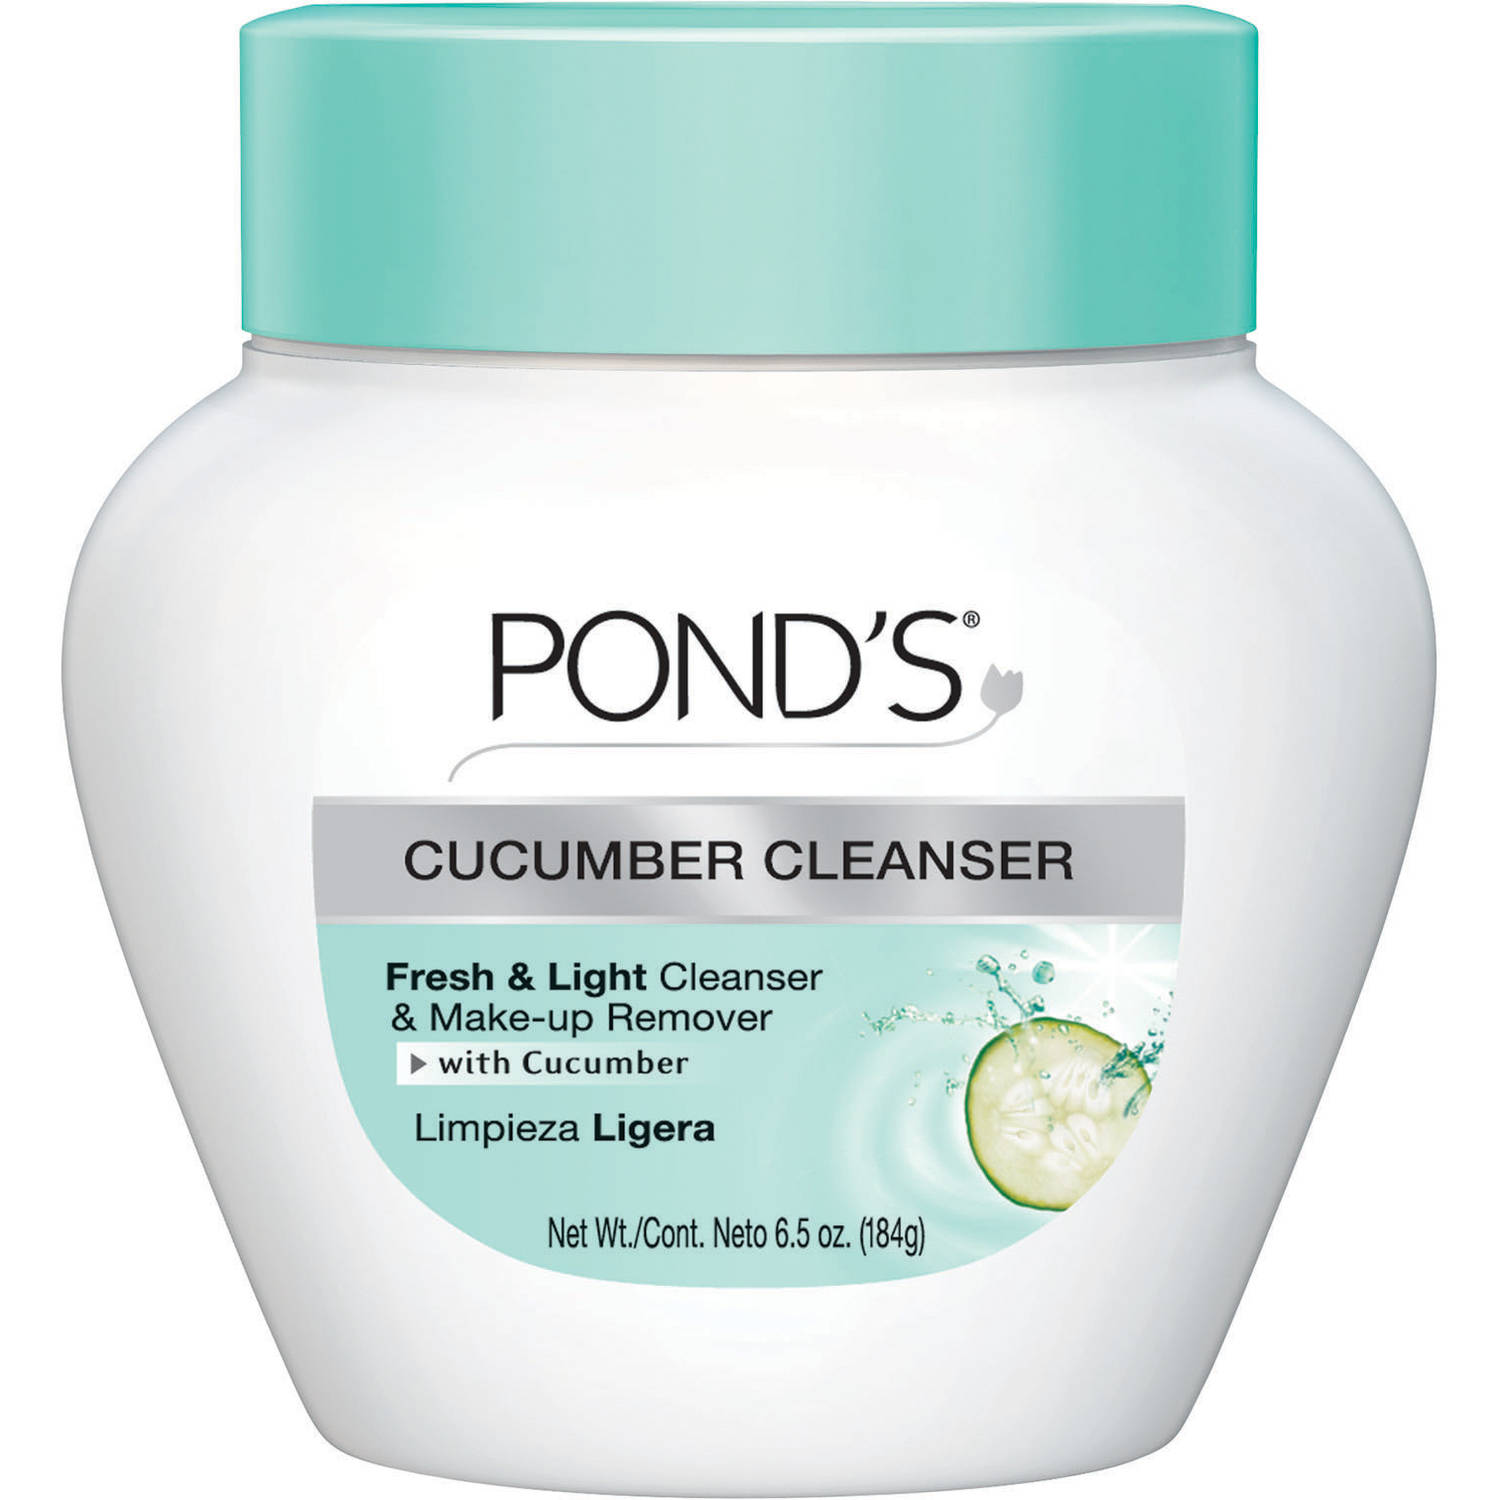 Pond's Cool Cucumber Classic Deep Cleanser & Make-Up Remover, 6.5 oz